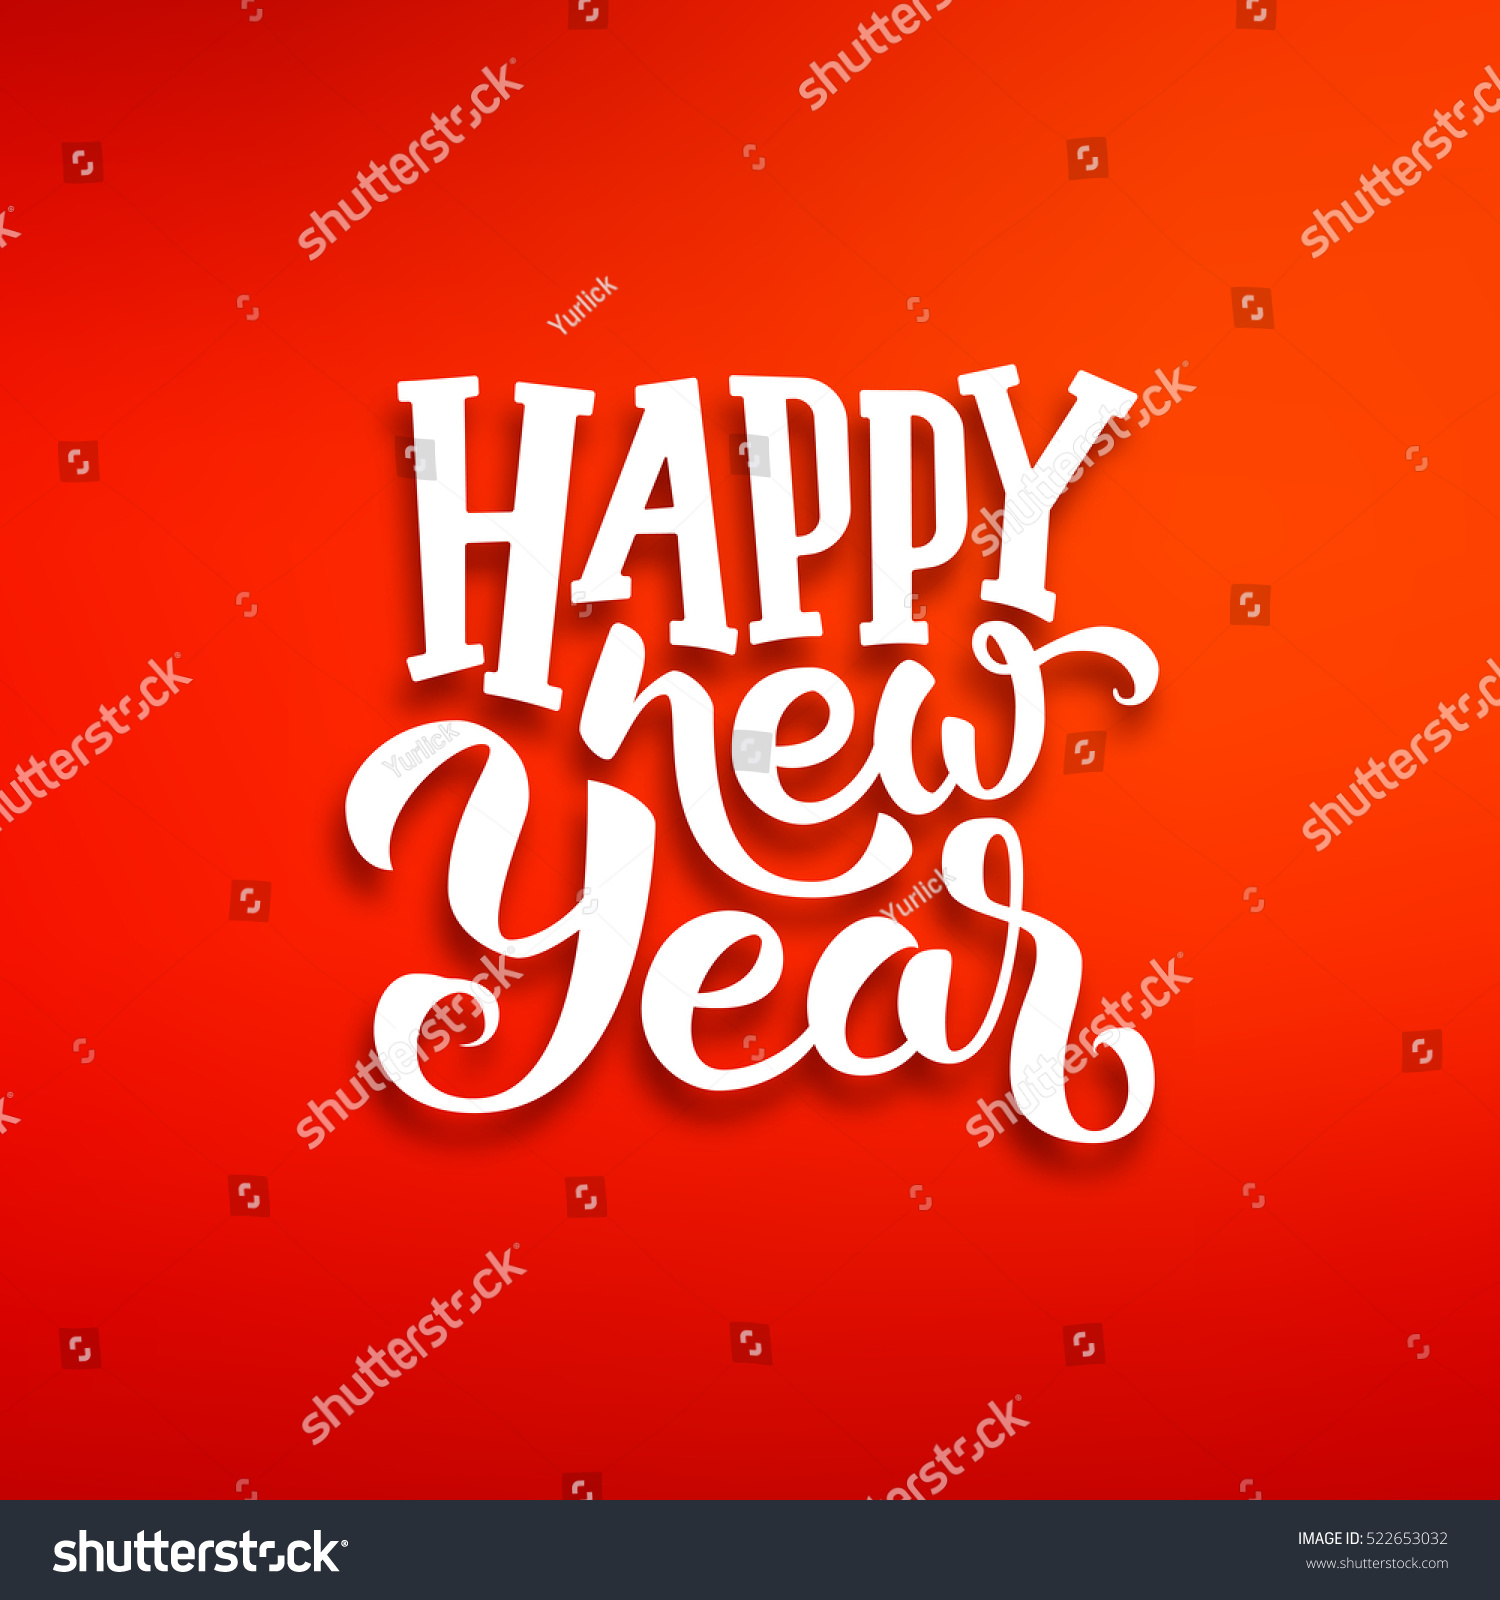 Happy new year greeting card design stock vector royalty free happy new year greeting card design with white lettering on red blurred background vector festive m4hsunfo